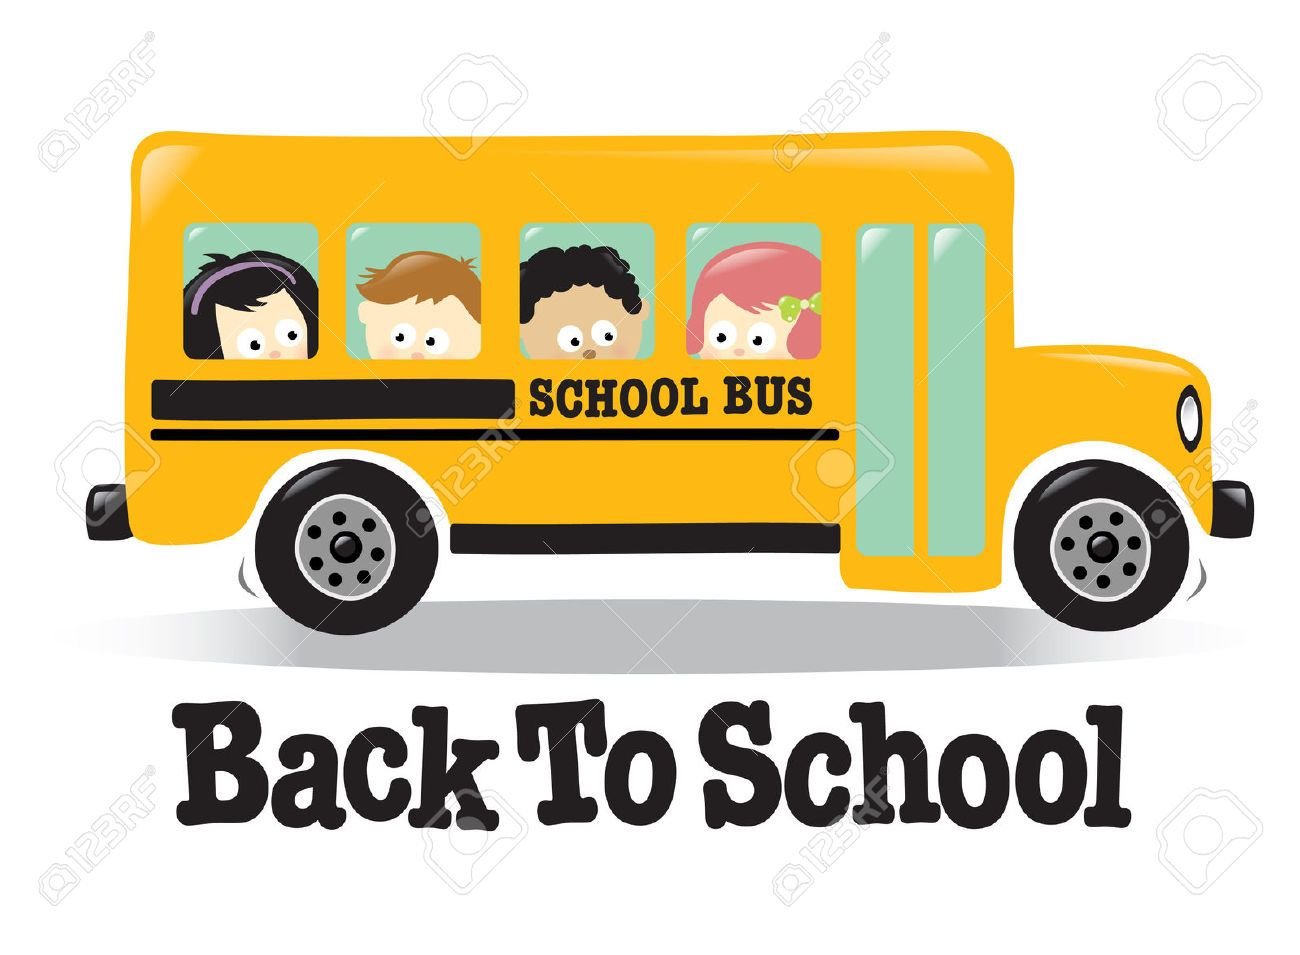 back to school bus w kids stock vector 6308674 busy boards for rh pinterest com au school bus vector png school bus vector png